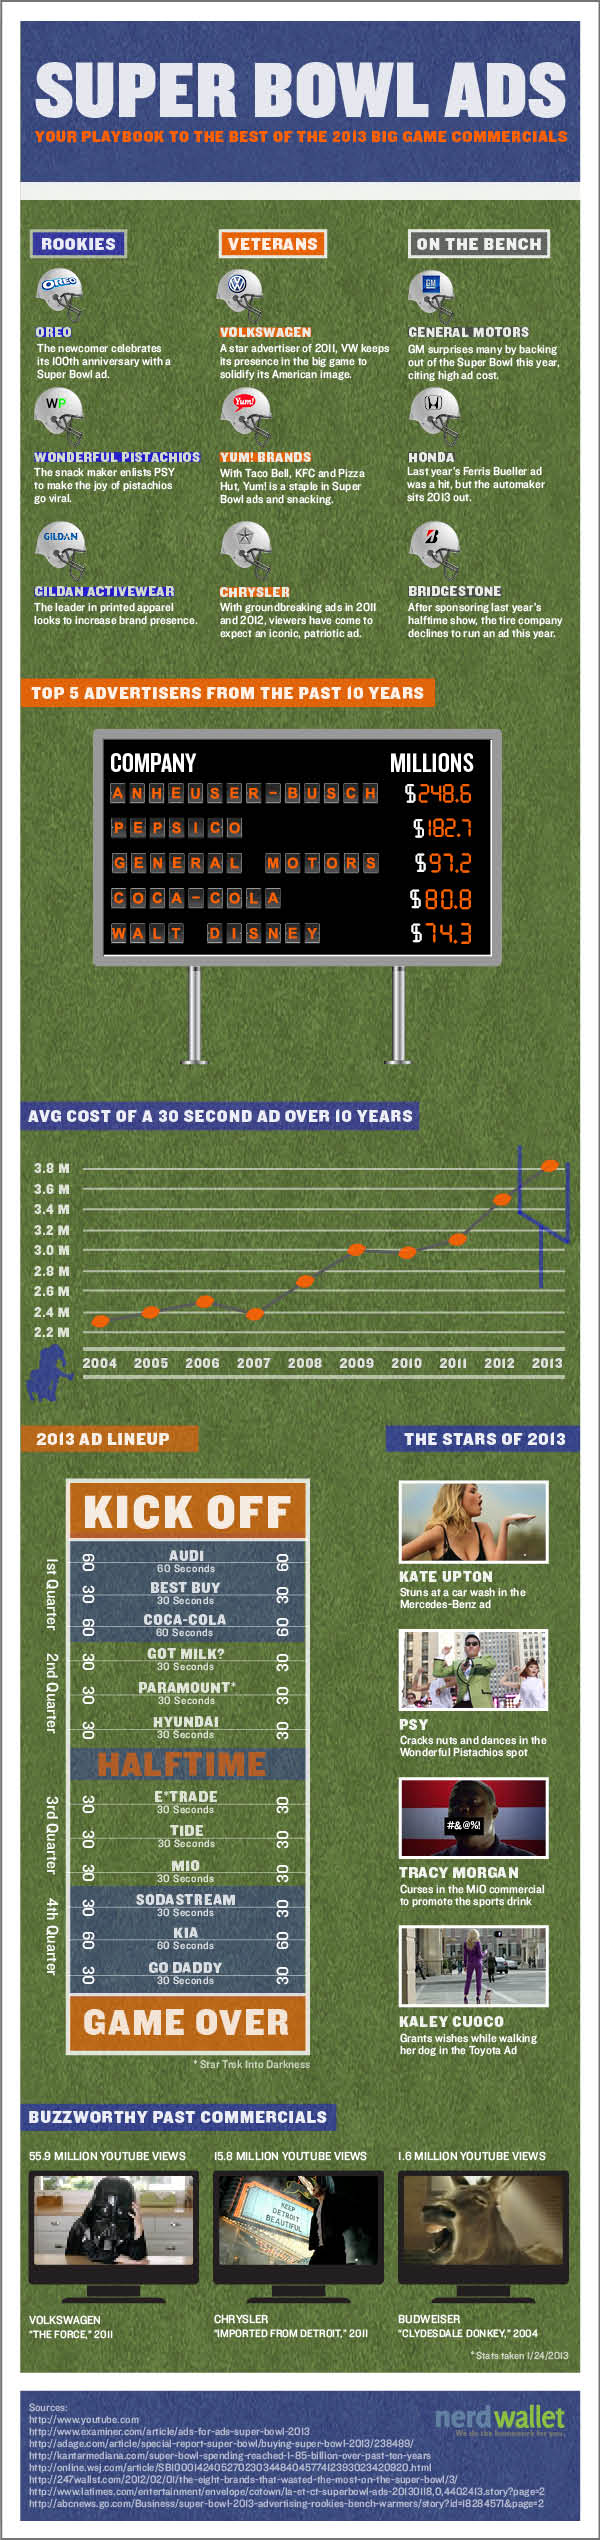 Best Super Bowl Ads Commercials Playbook Infographic